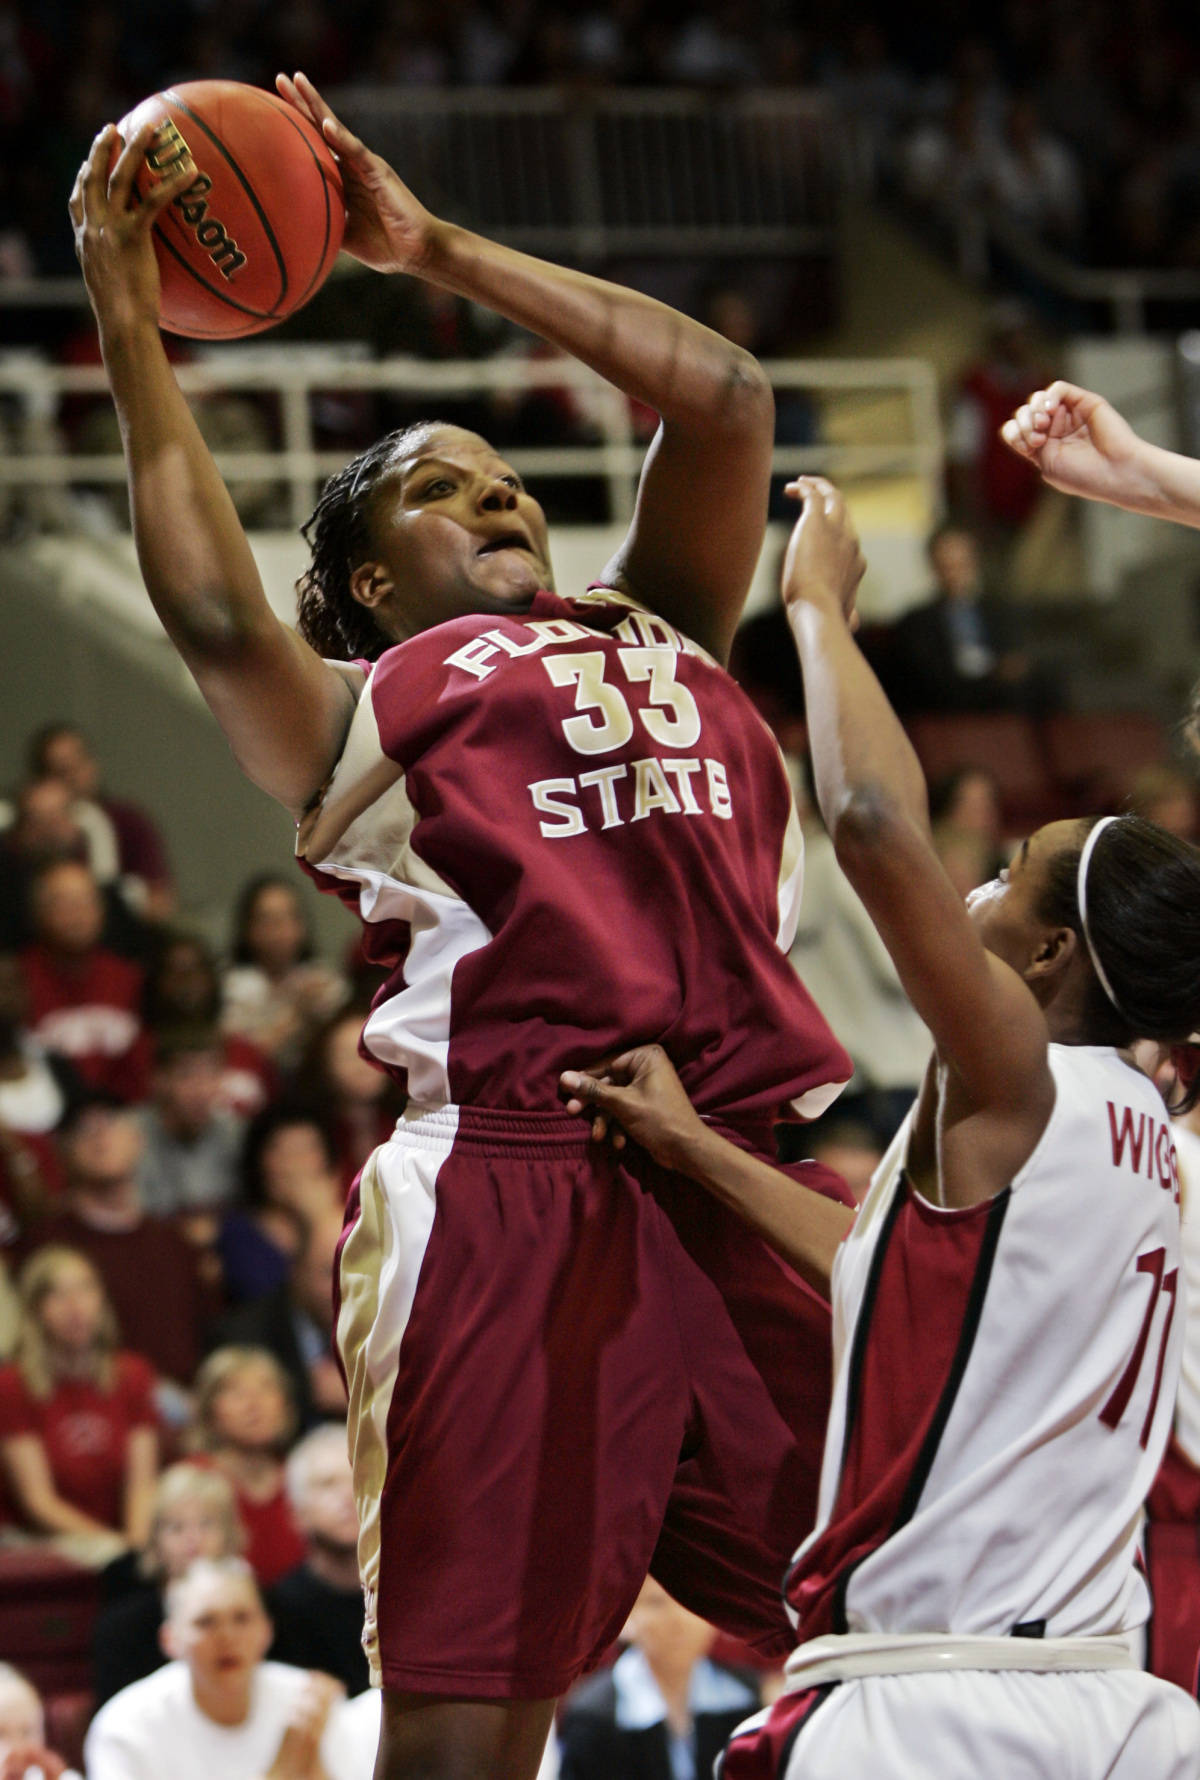 Florida State center Britany Miller (33) scores in front of Stanford guard Candice Wiggins, right, in the first half of their second-round game in the NCAA women's basketball tournament in Stanford, Calif., Monday, March 19, 2007. (AP Photo/Paul Sakuma)